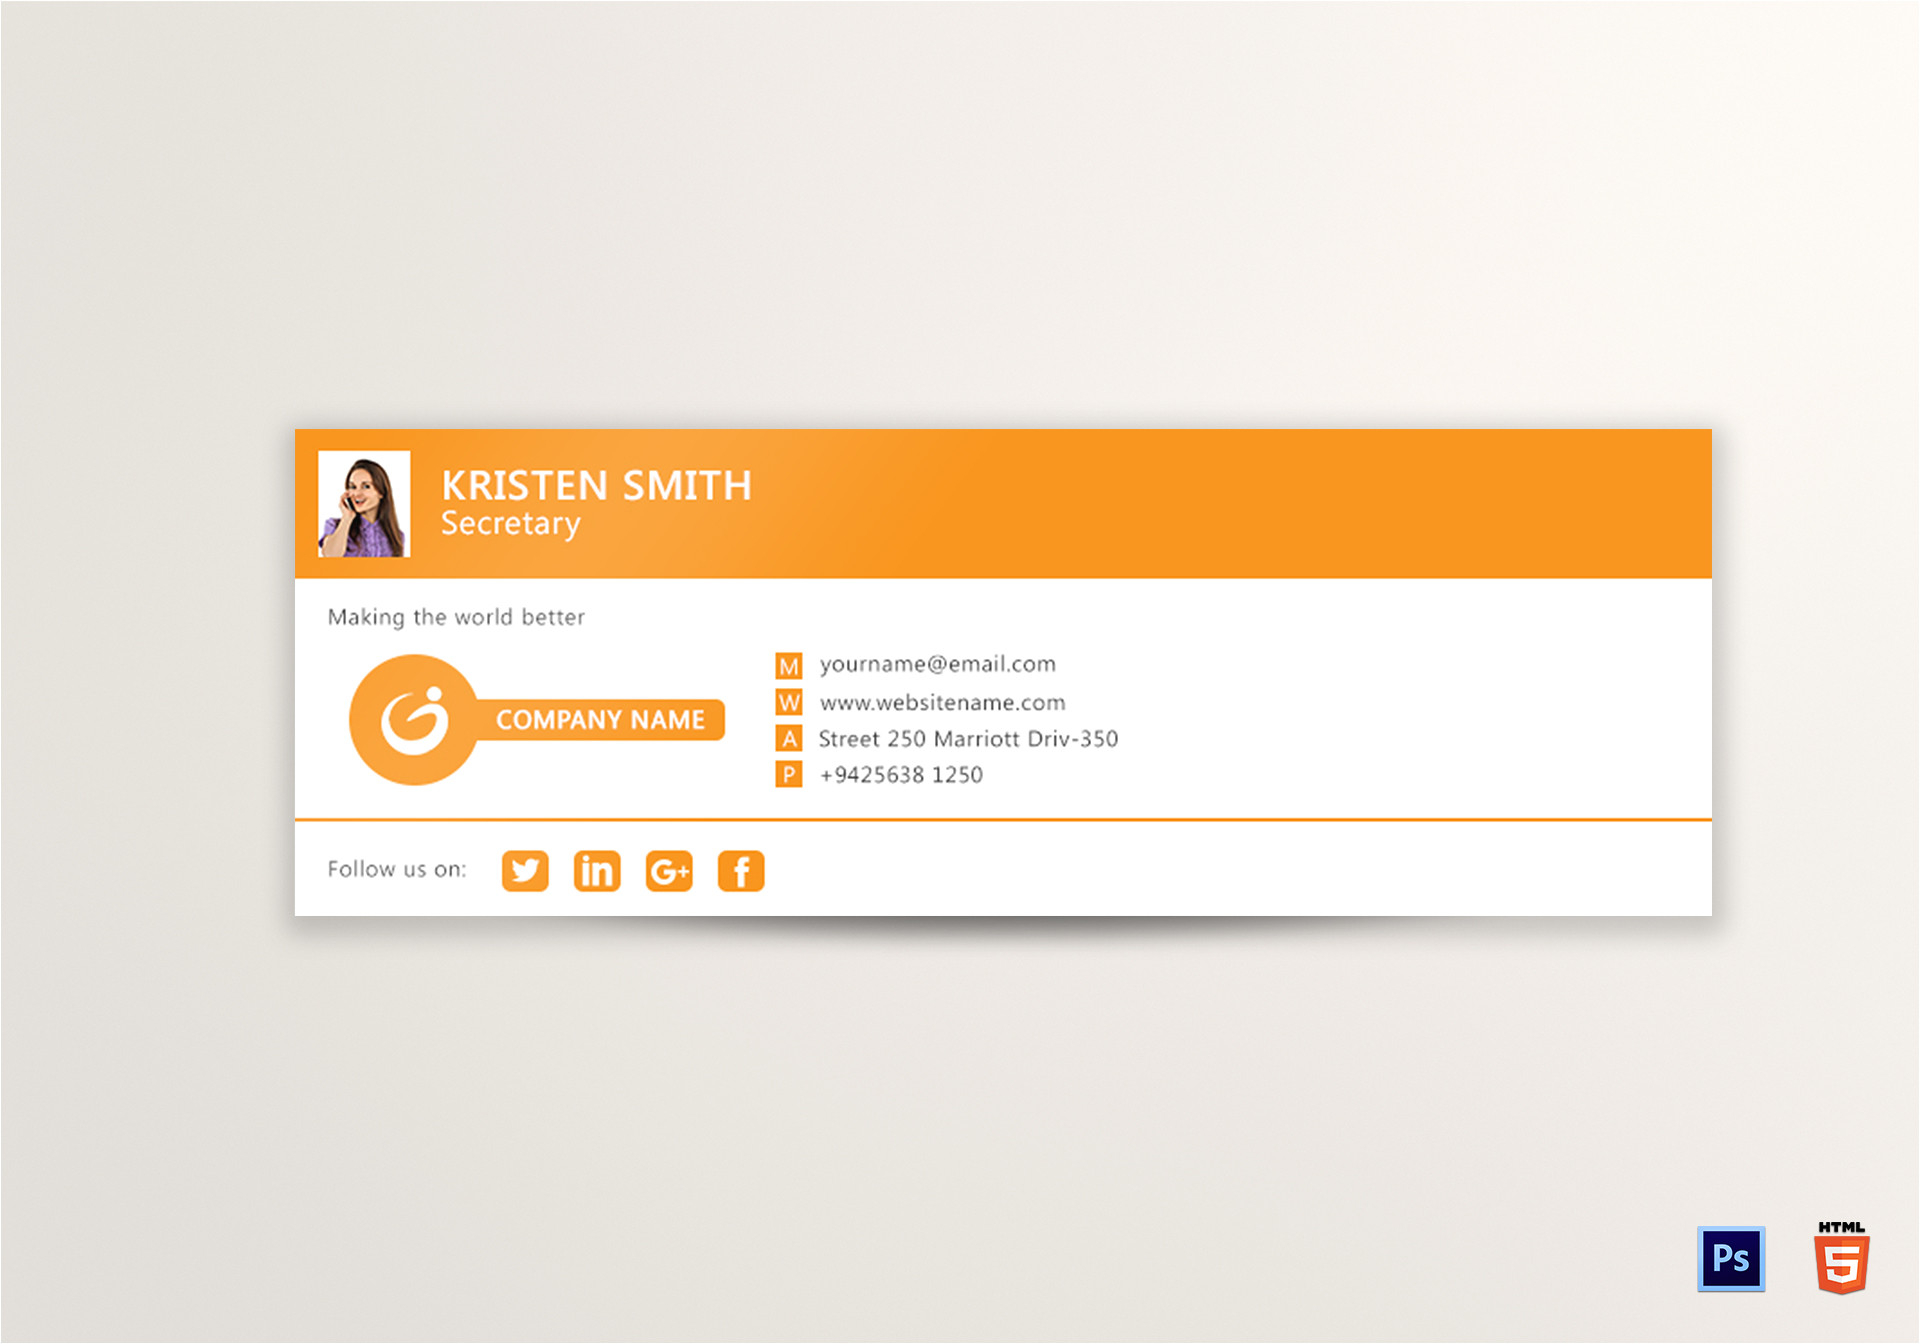 Email Signature Design Templates Outlook Email Signature Design Template In Psd HTML